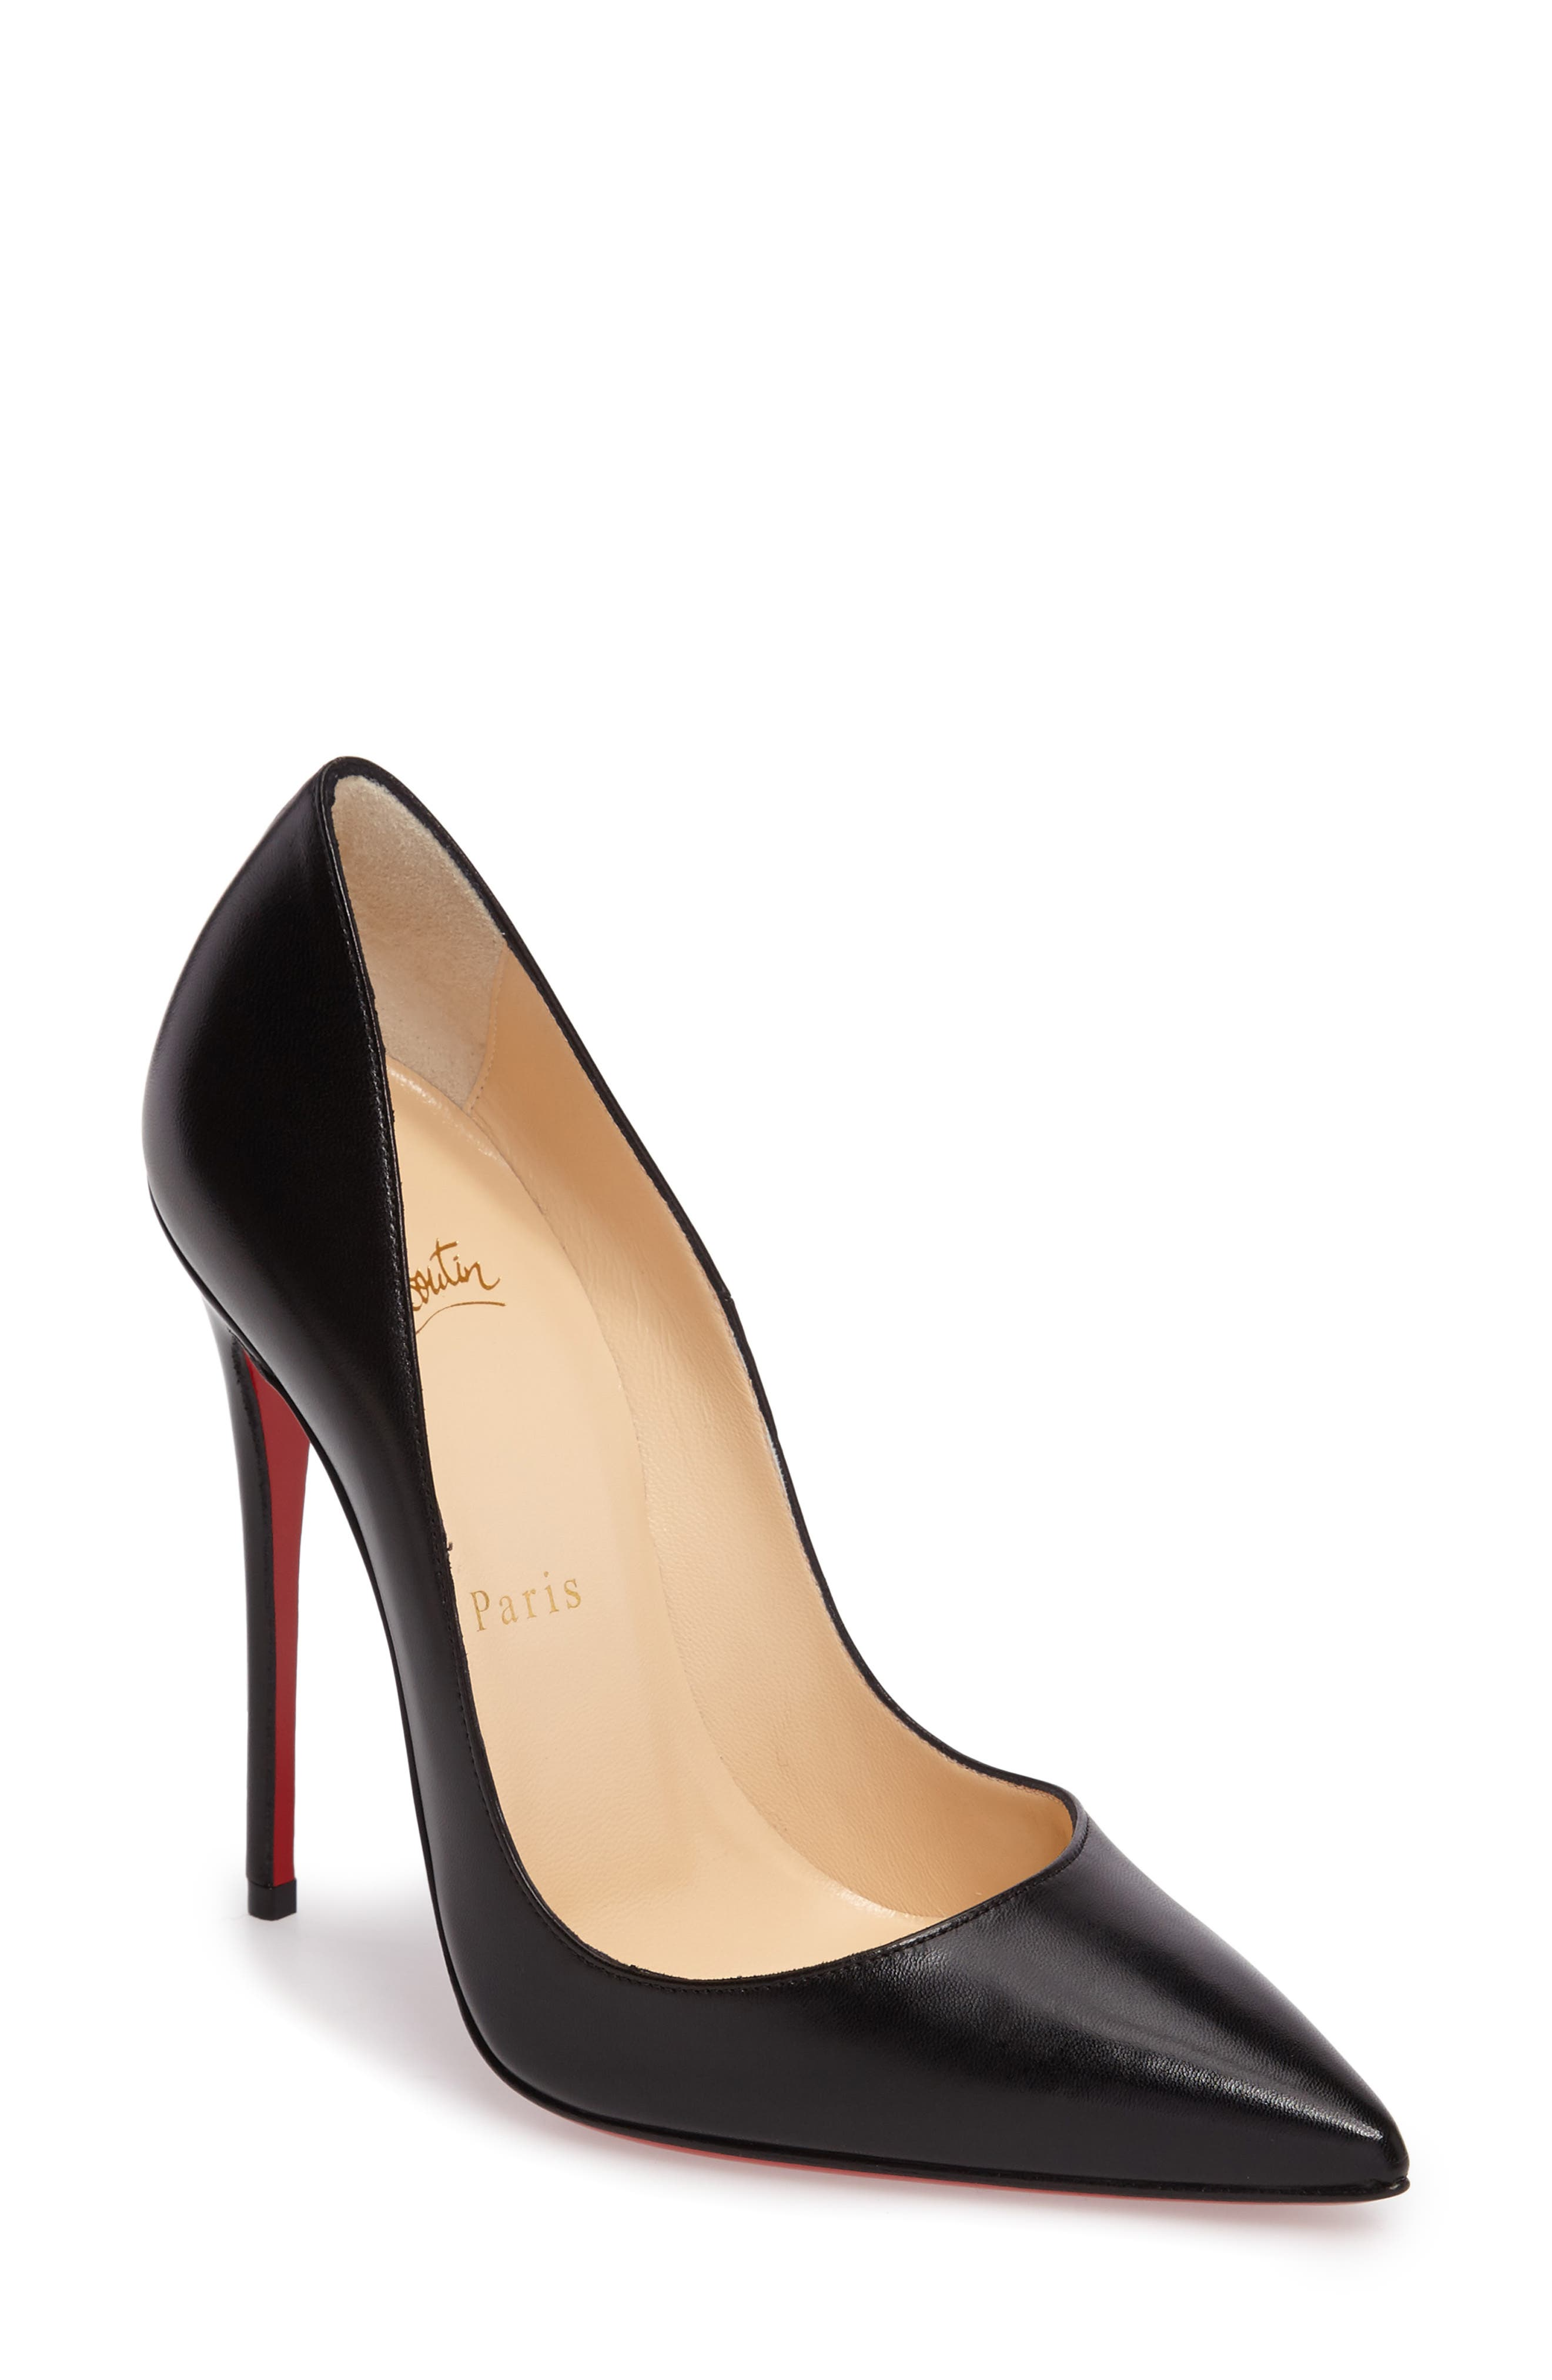 'So Kate' Pointy Toe Leather Pump,                         Main,                         color, 001